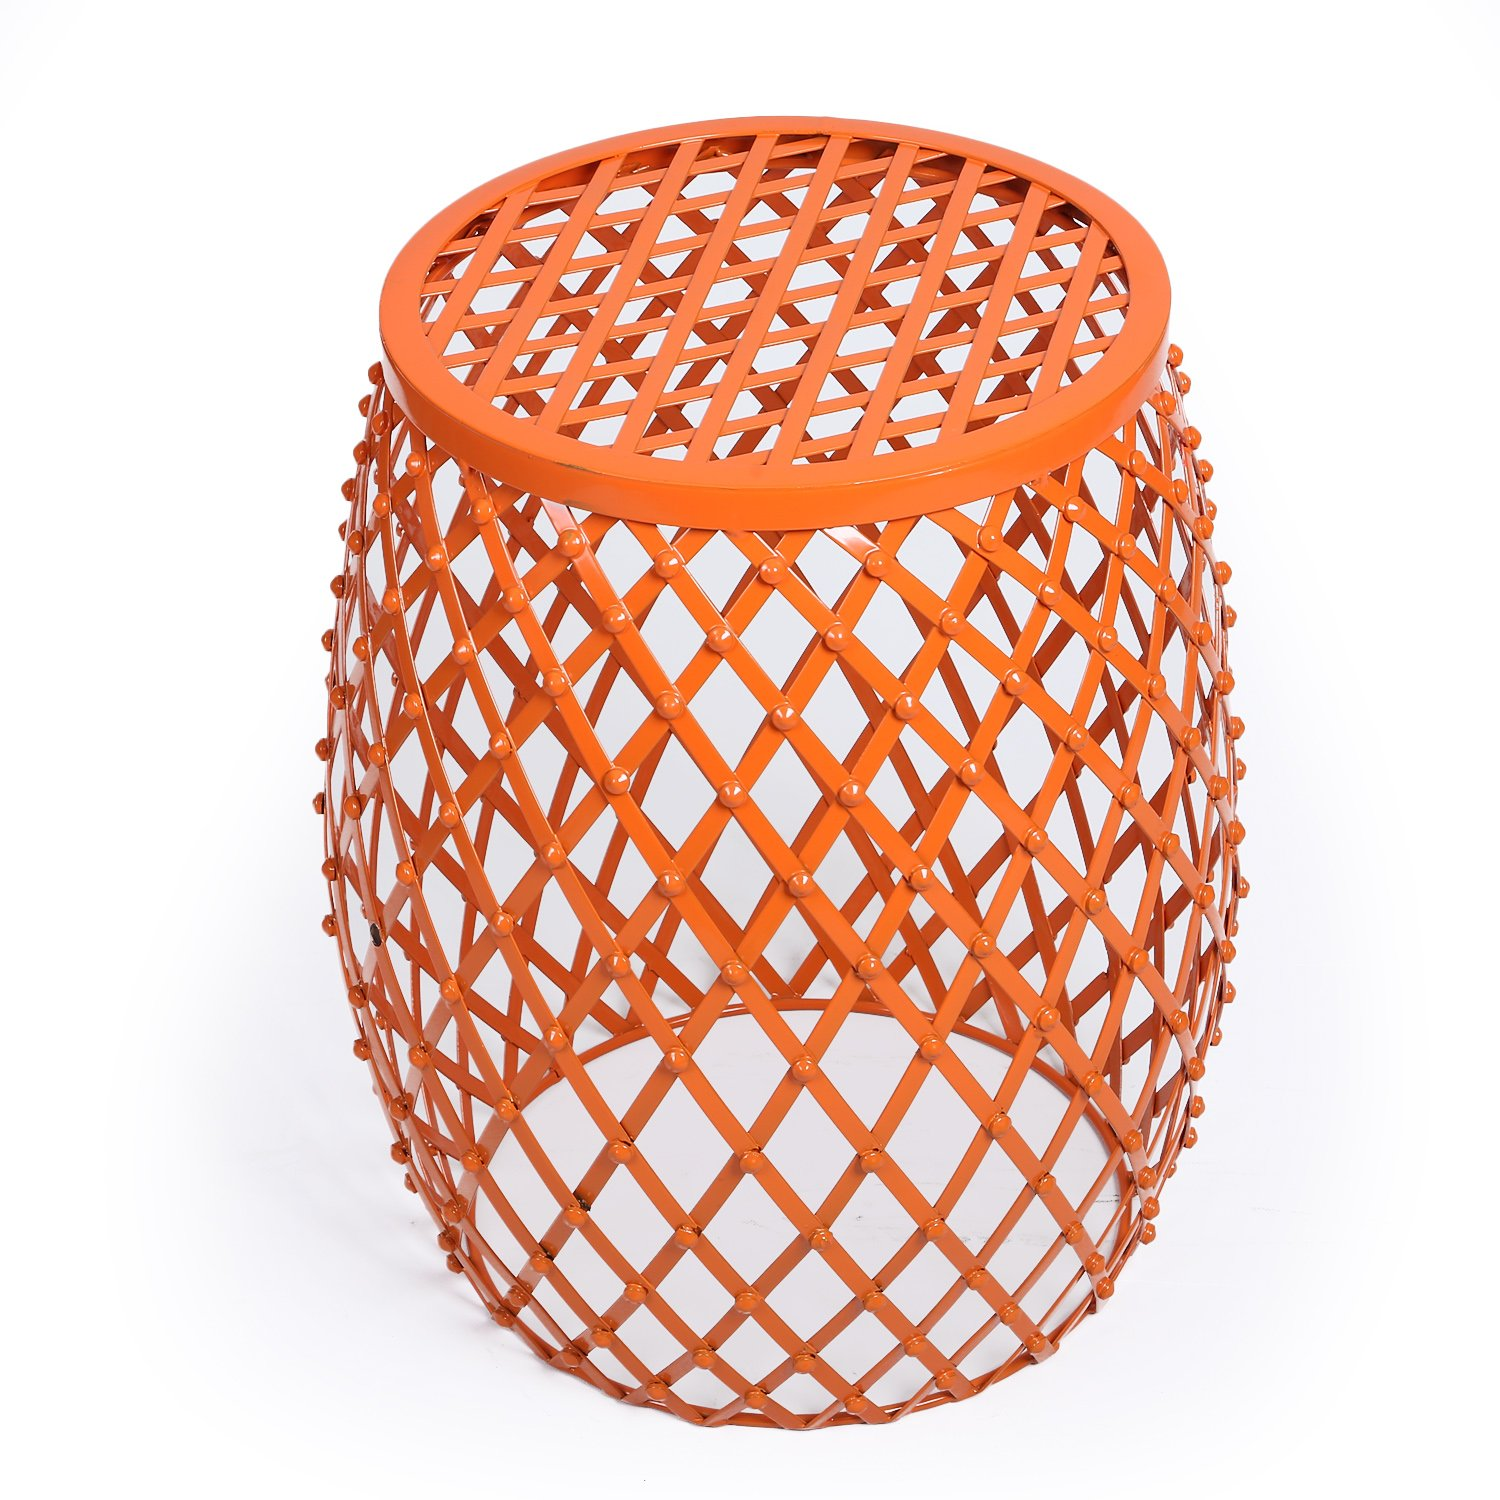 decenthome metal wire accent side table stool orange garden outdoor shabby chic chest drawers mirrored hall led lamp ceramic end tables white marble dining sofa with console